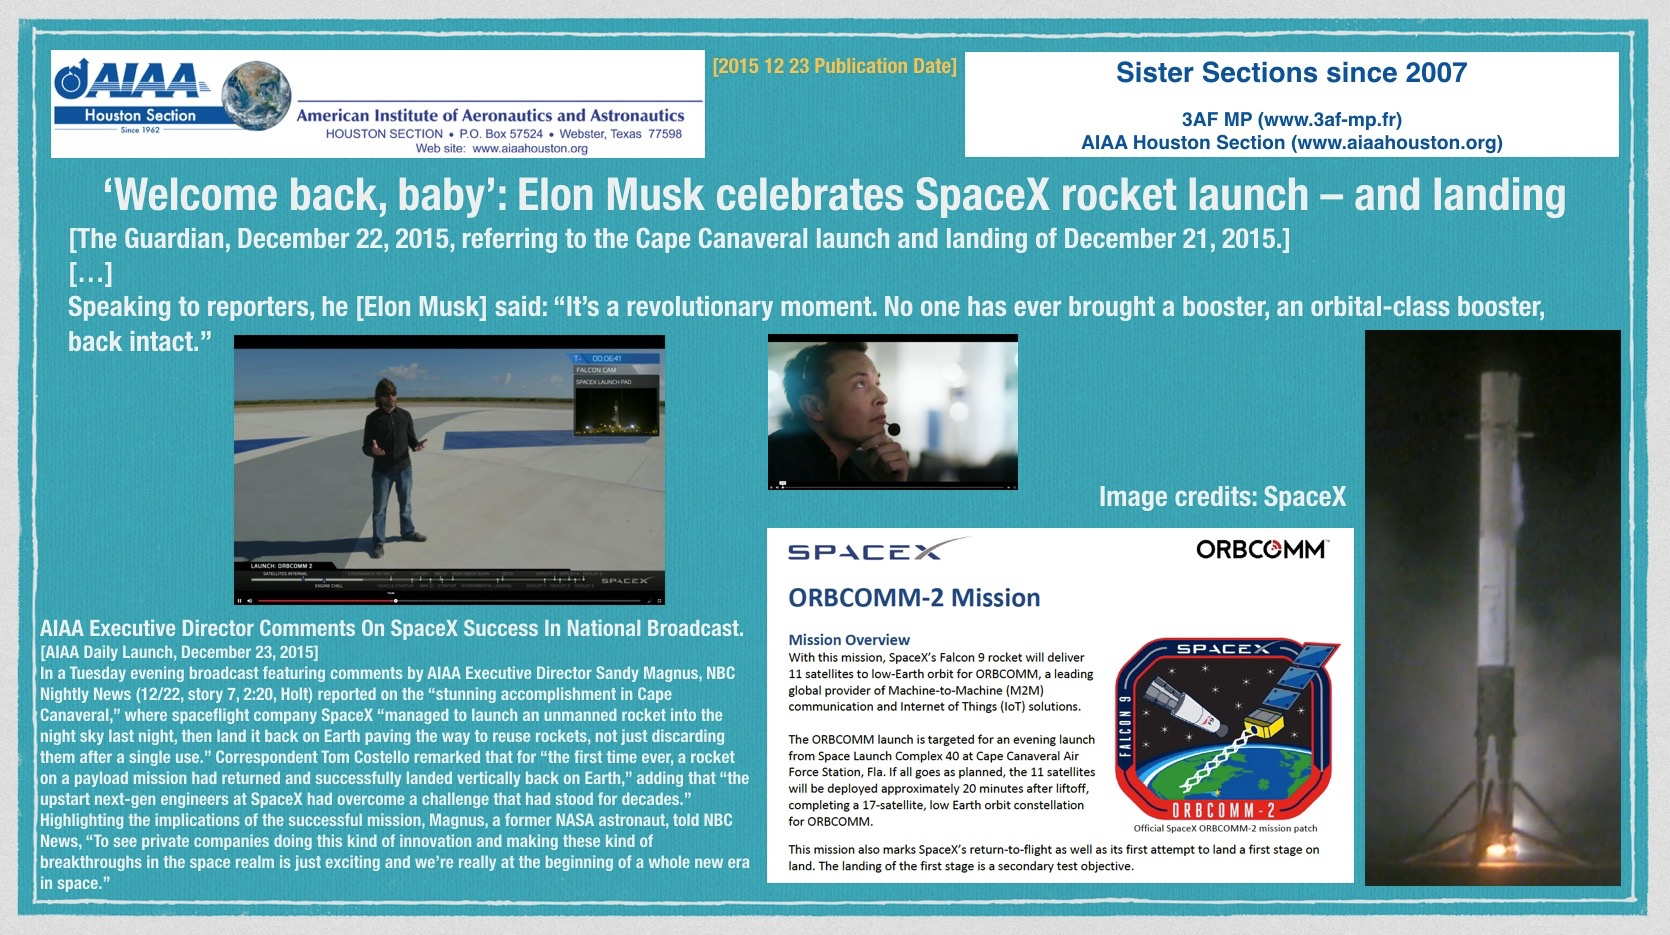 Above: (Click to zoom.) Image credits: SpaceX.